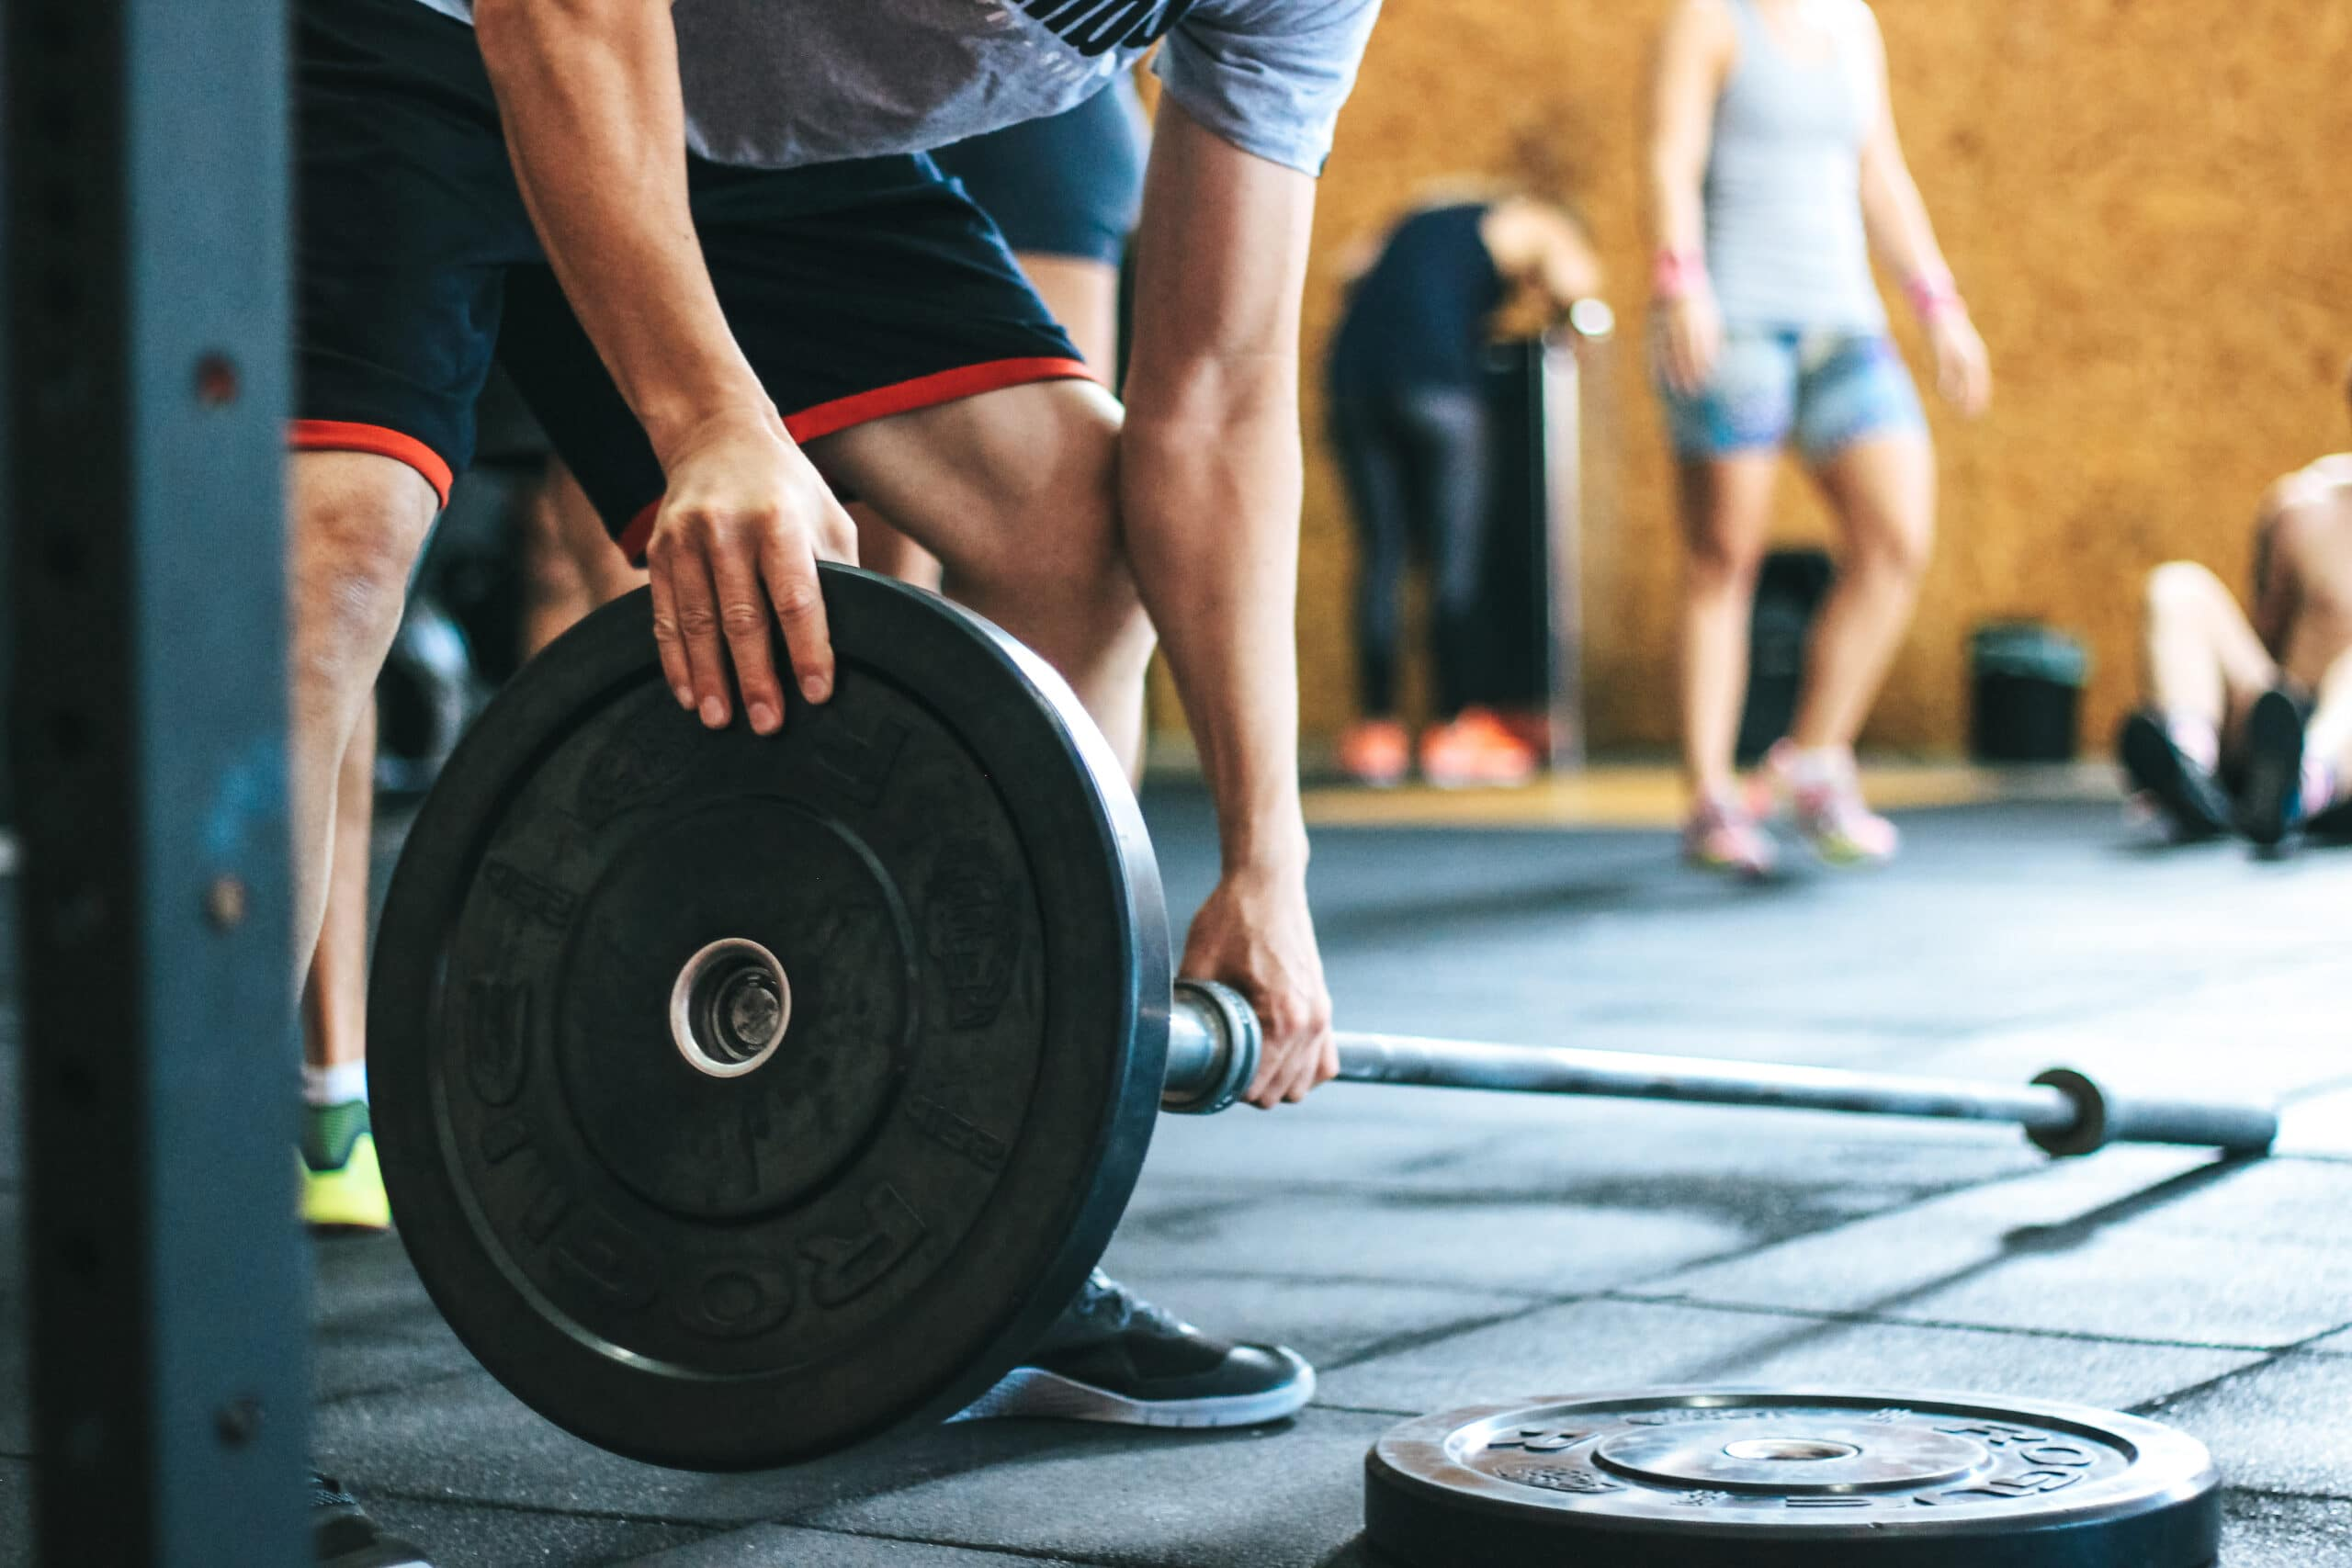 Gym Injuries Set to Spike As Gyms Reopen scaled